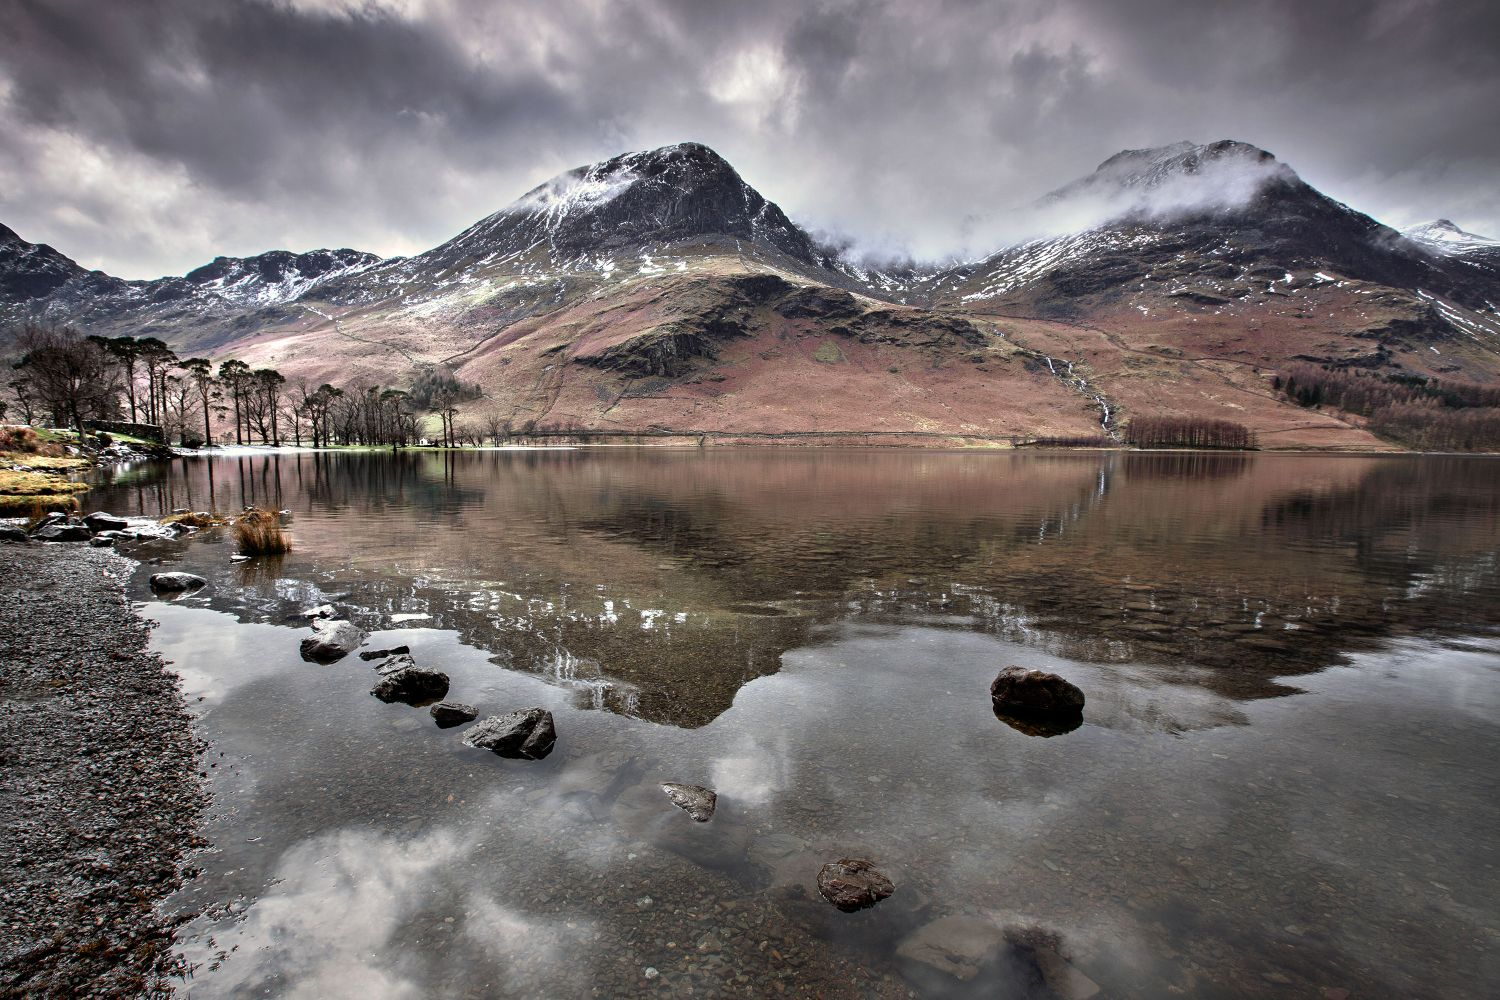 Melting snow on High Crag above Buttermere